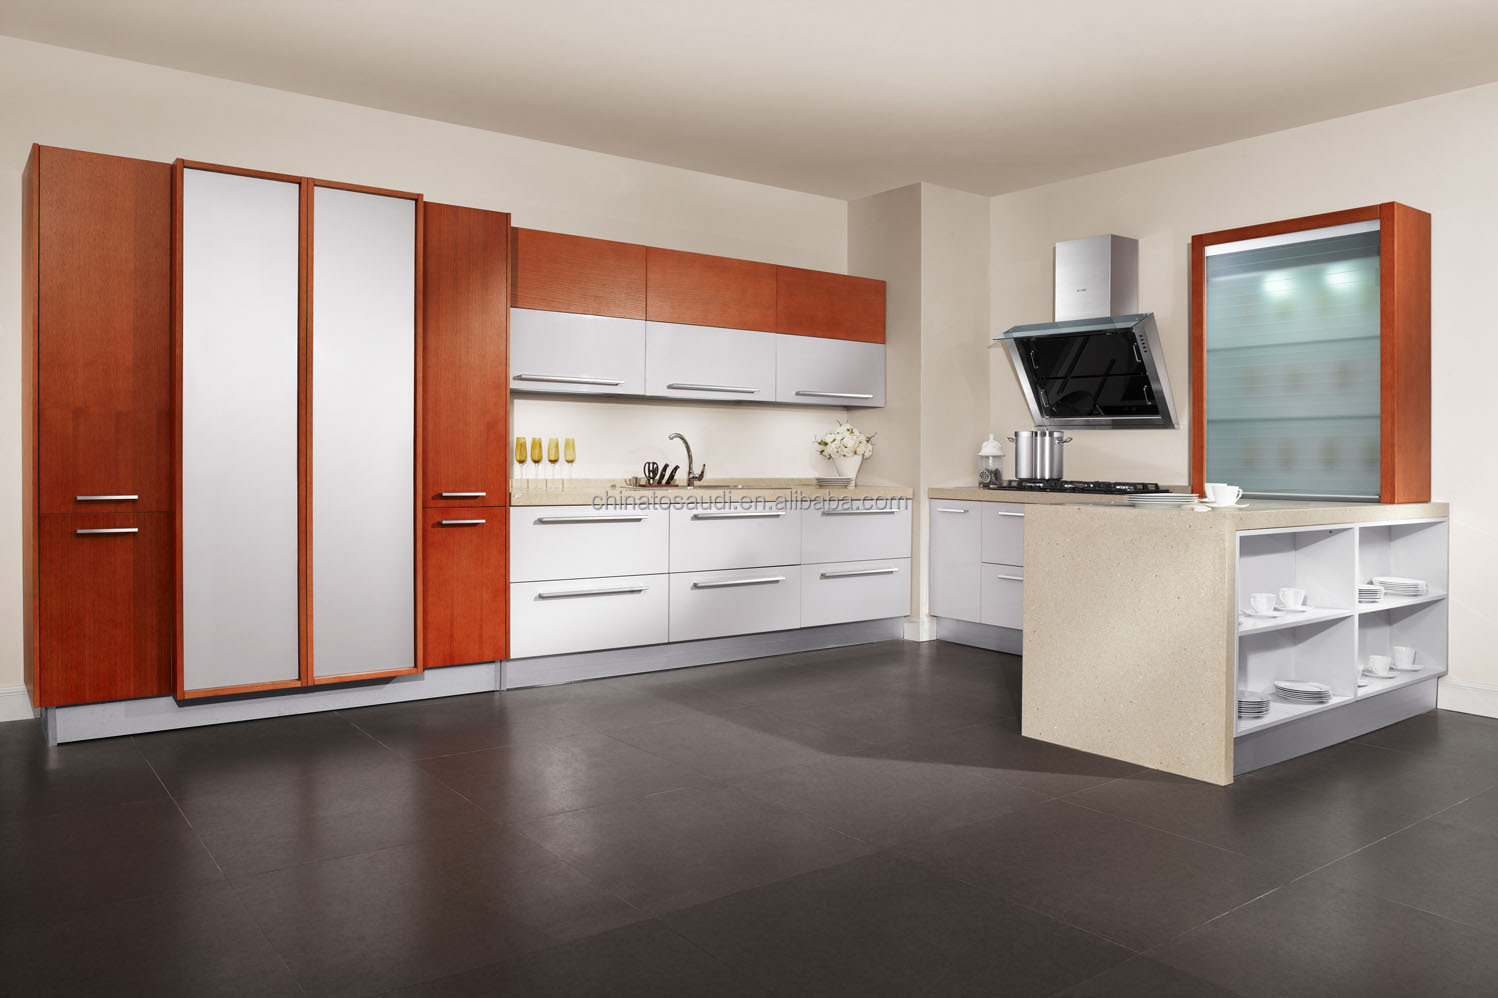 Modern Kitchen Designs Buy Online Modern Modular Kitchens Designs Price Kichen Cabinets With